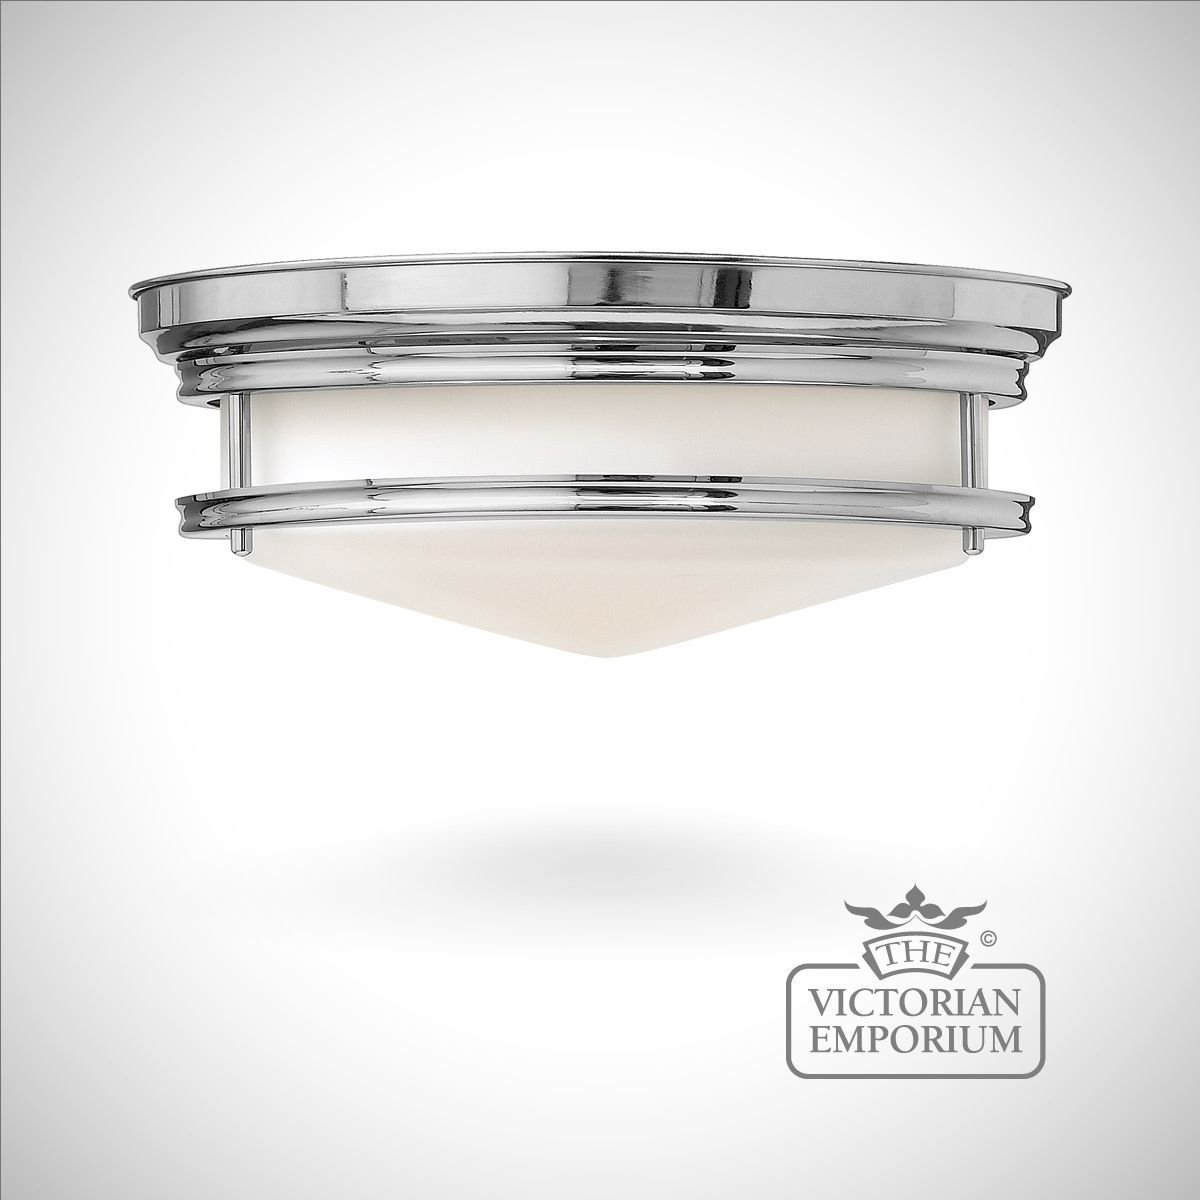 dlrn bathroom concepts light design lights mount flush ceiling led designs